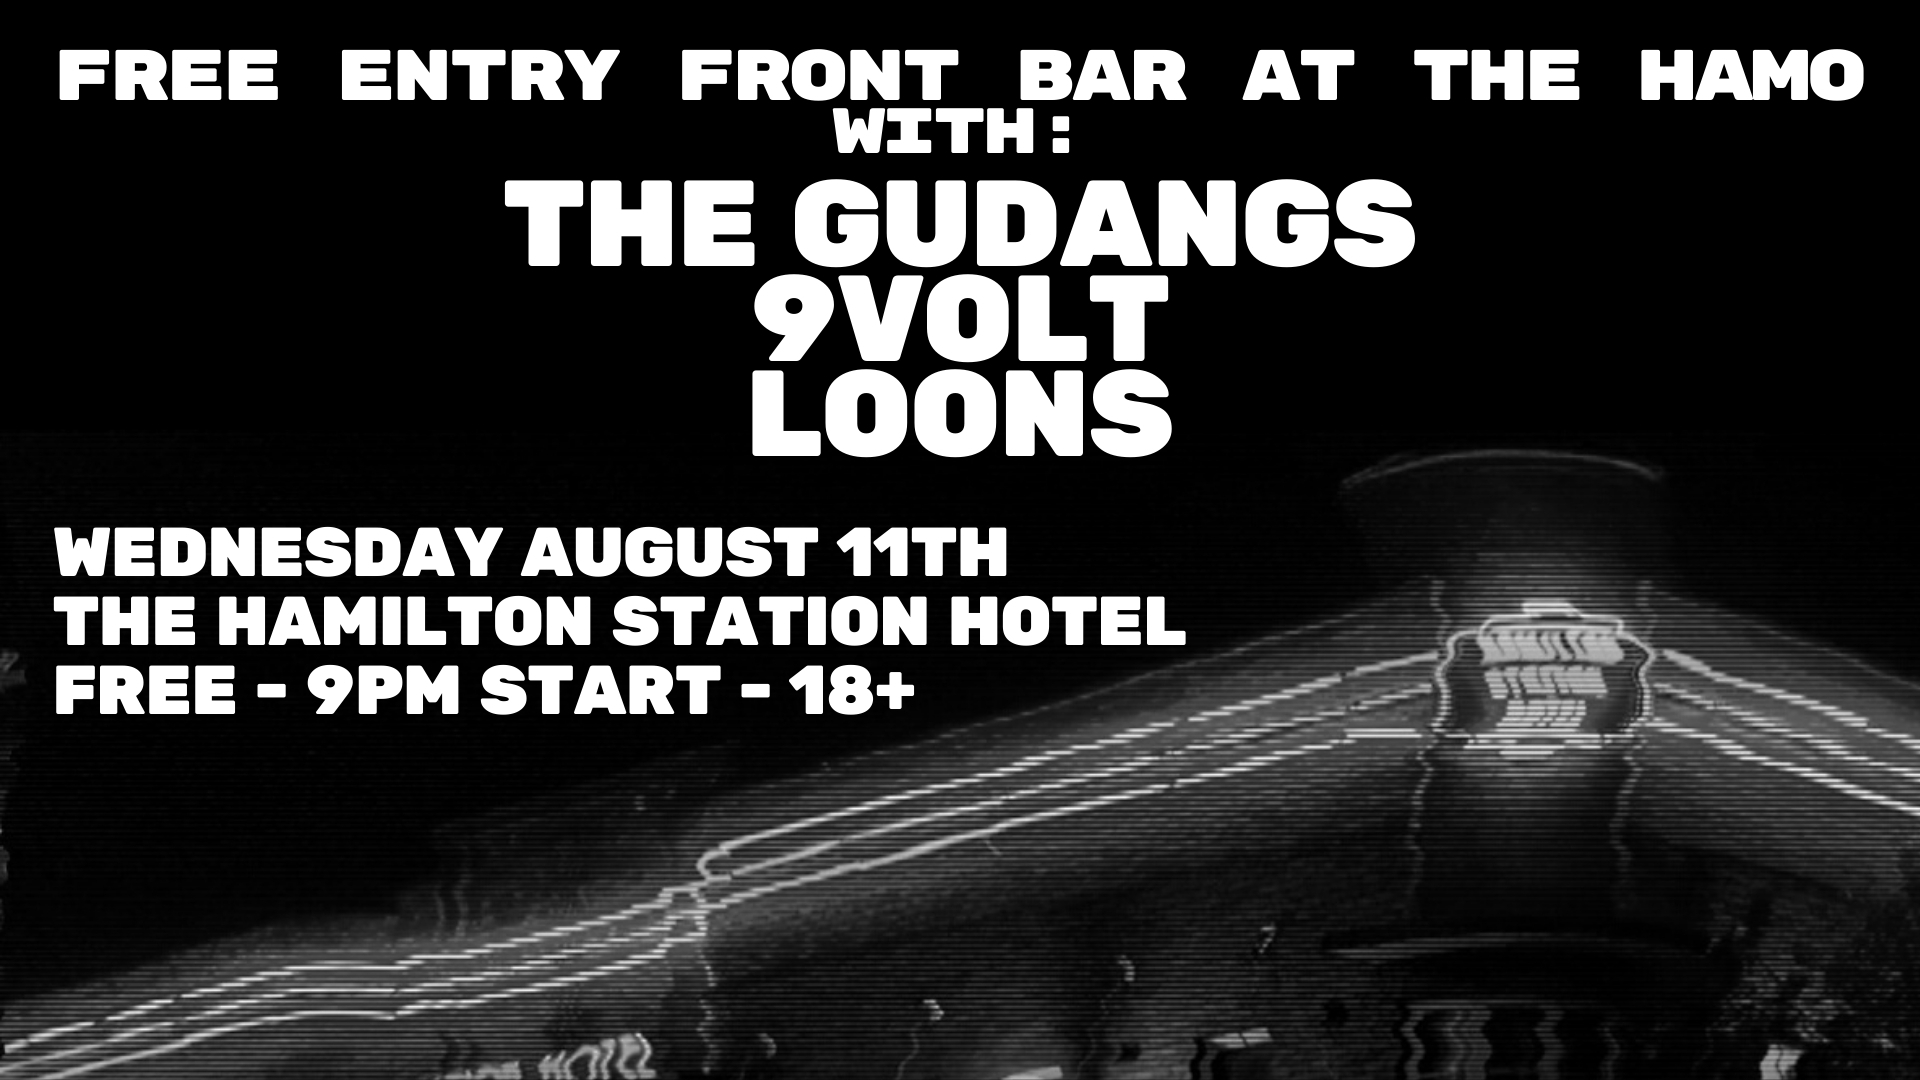 The Gudangs / 9Volt / Loons